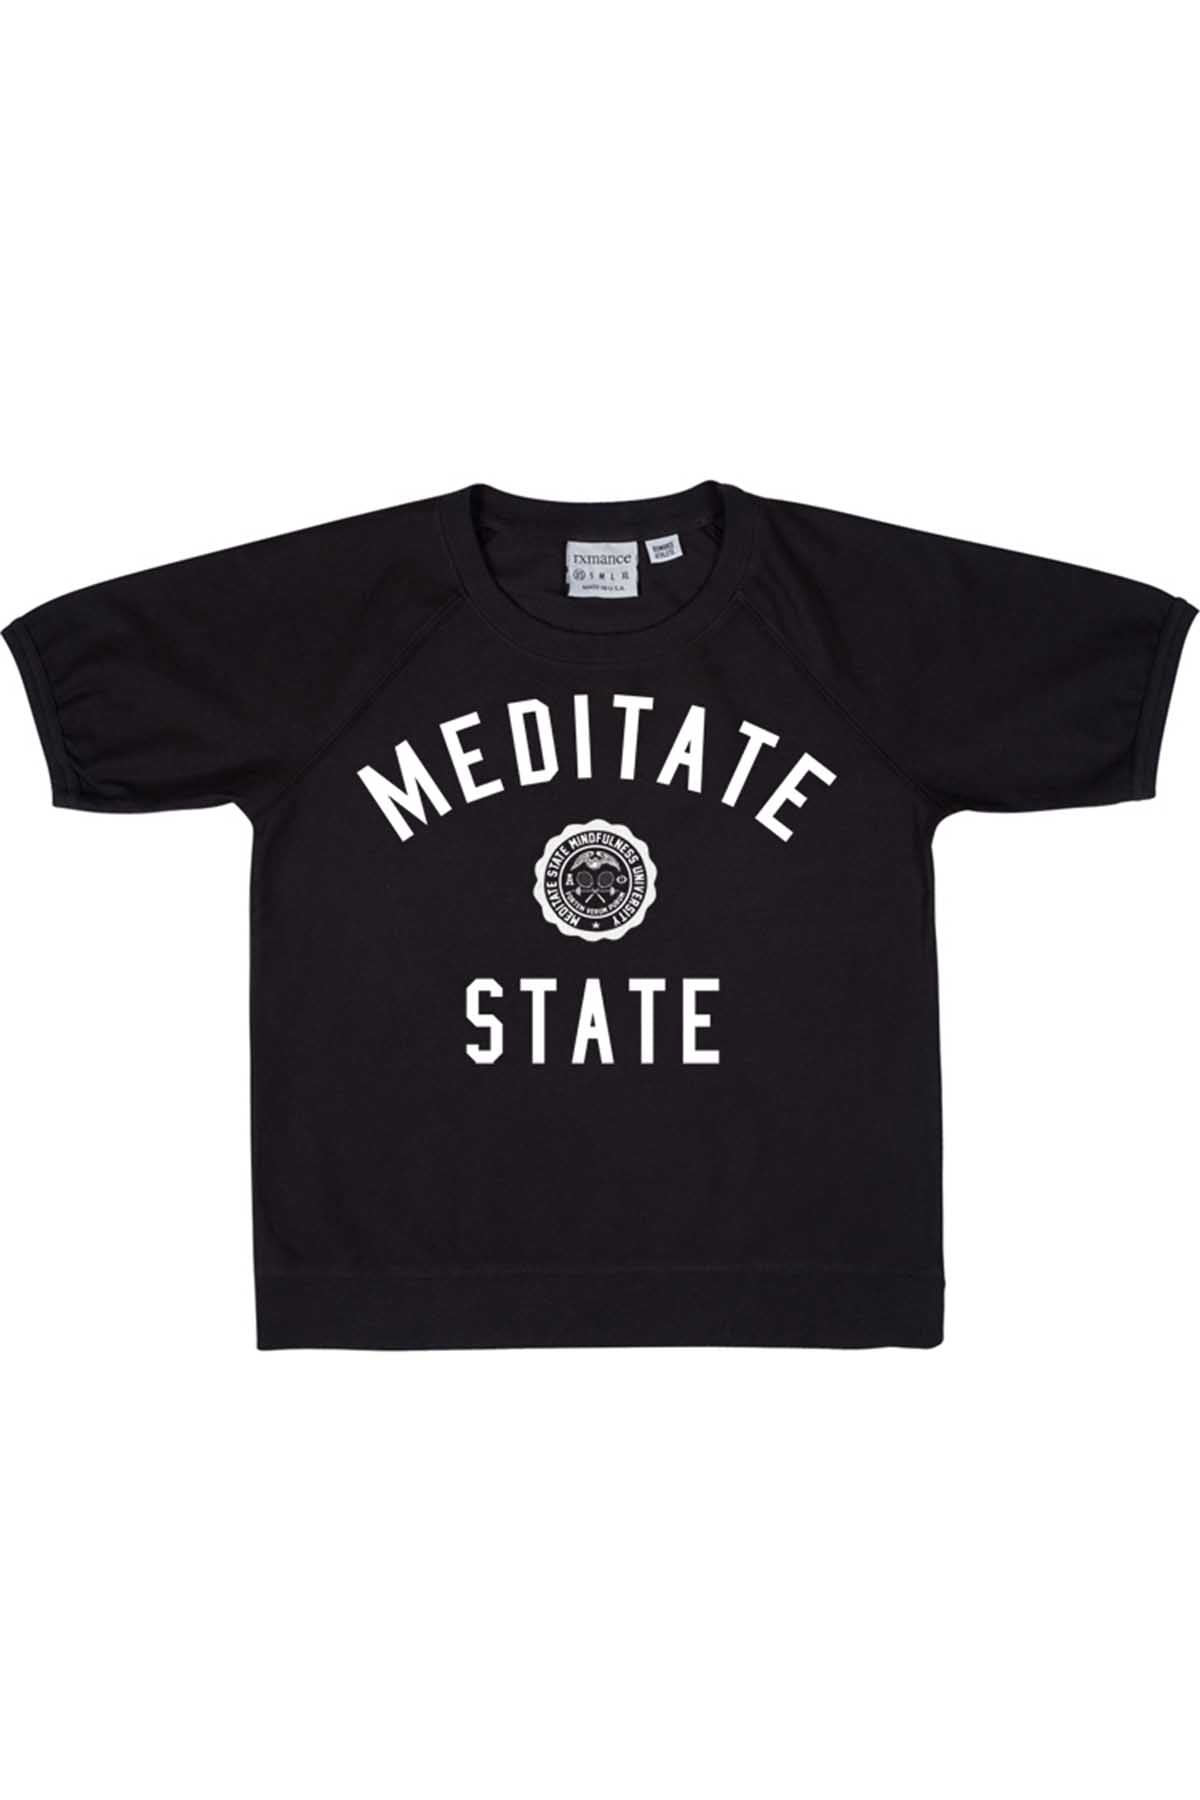 Rxmance Unisex Black Meditate State Loose-Knit Short-Sleeve Tee